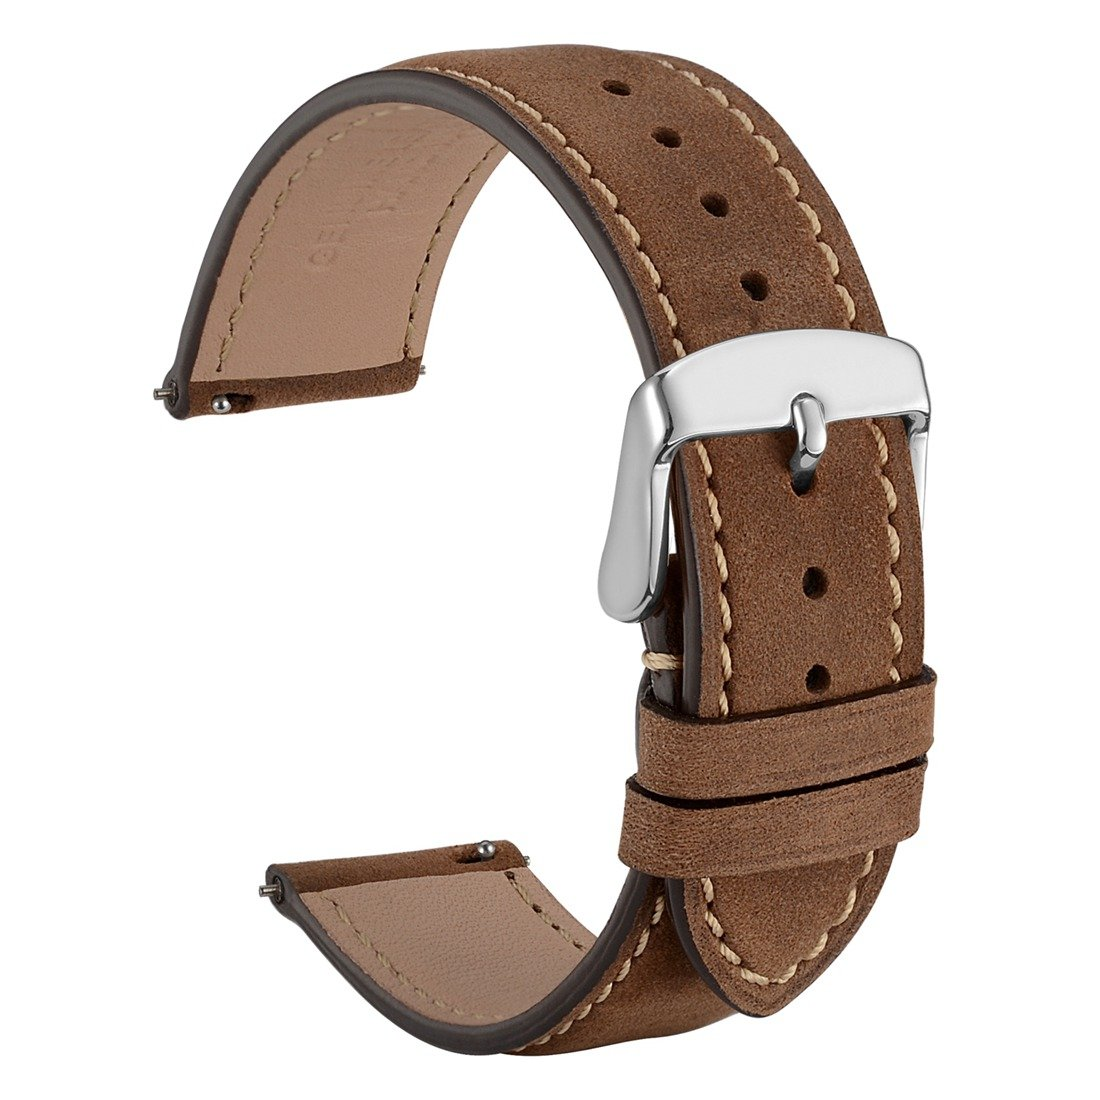 WOCCI 20mm Suede Vintage Leather Watch Band with Pins Buckle, Quick Release Strap (Dark Brown with Contrasting Seam)